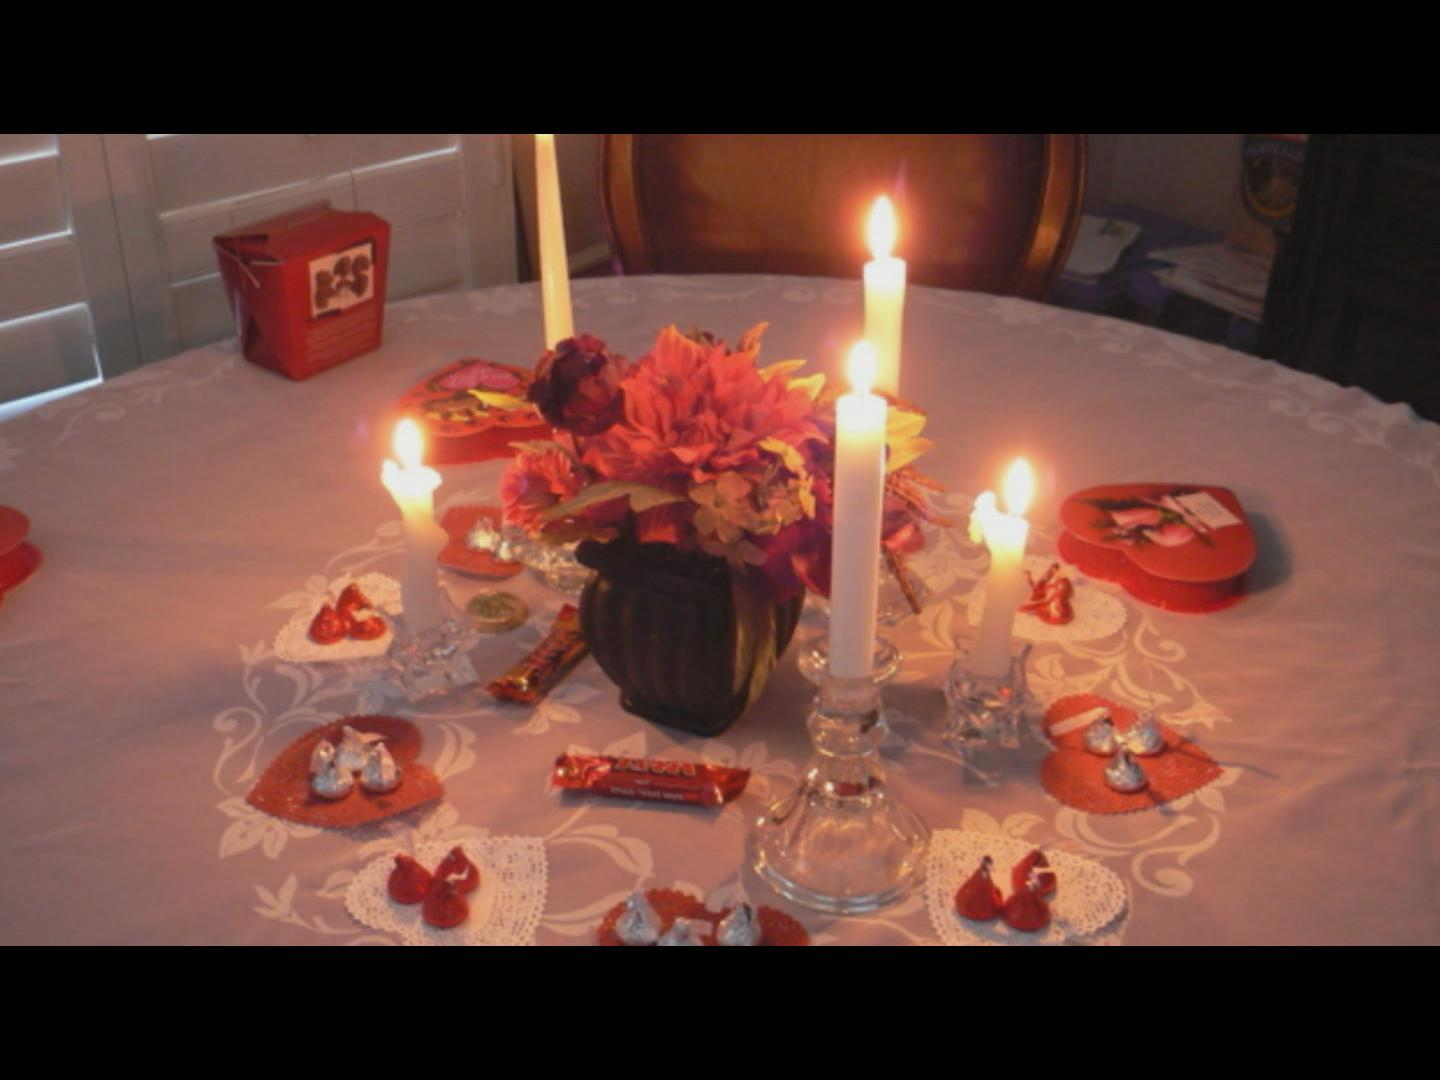 love romance how to plan a romantic dinner at home for your spouse